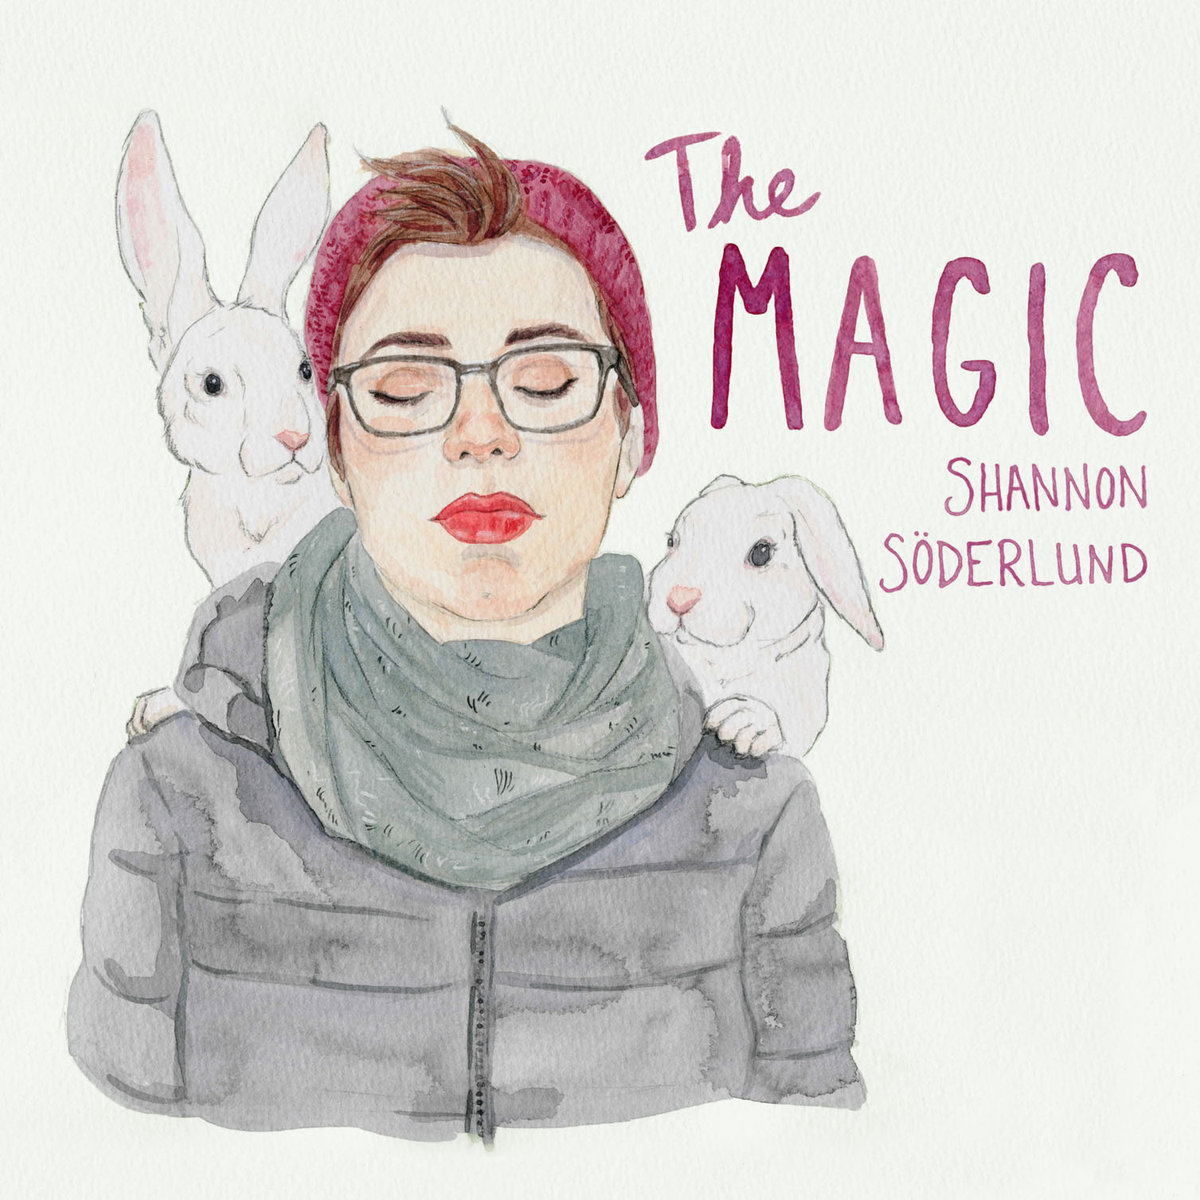 The Magic  by Shannon Söderlund